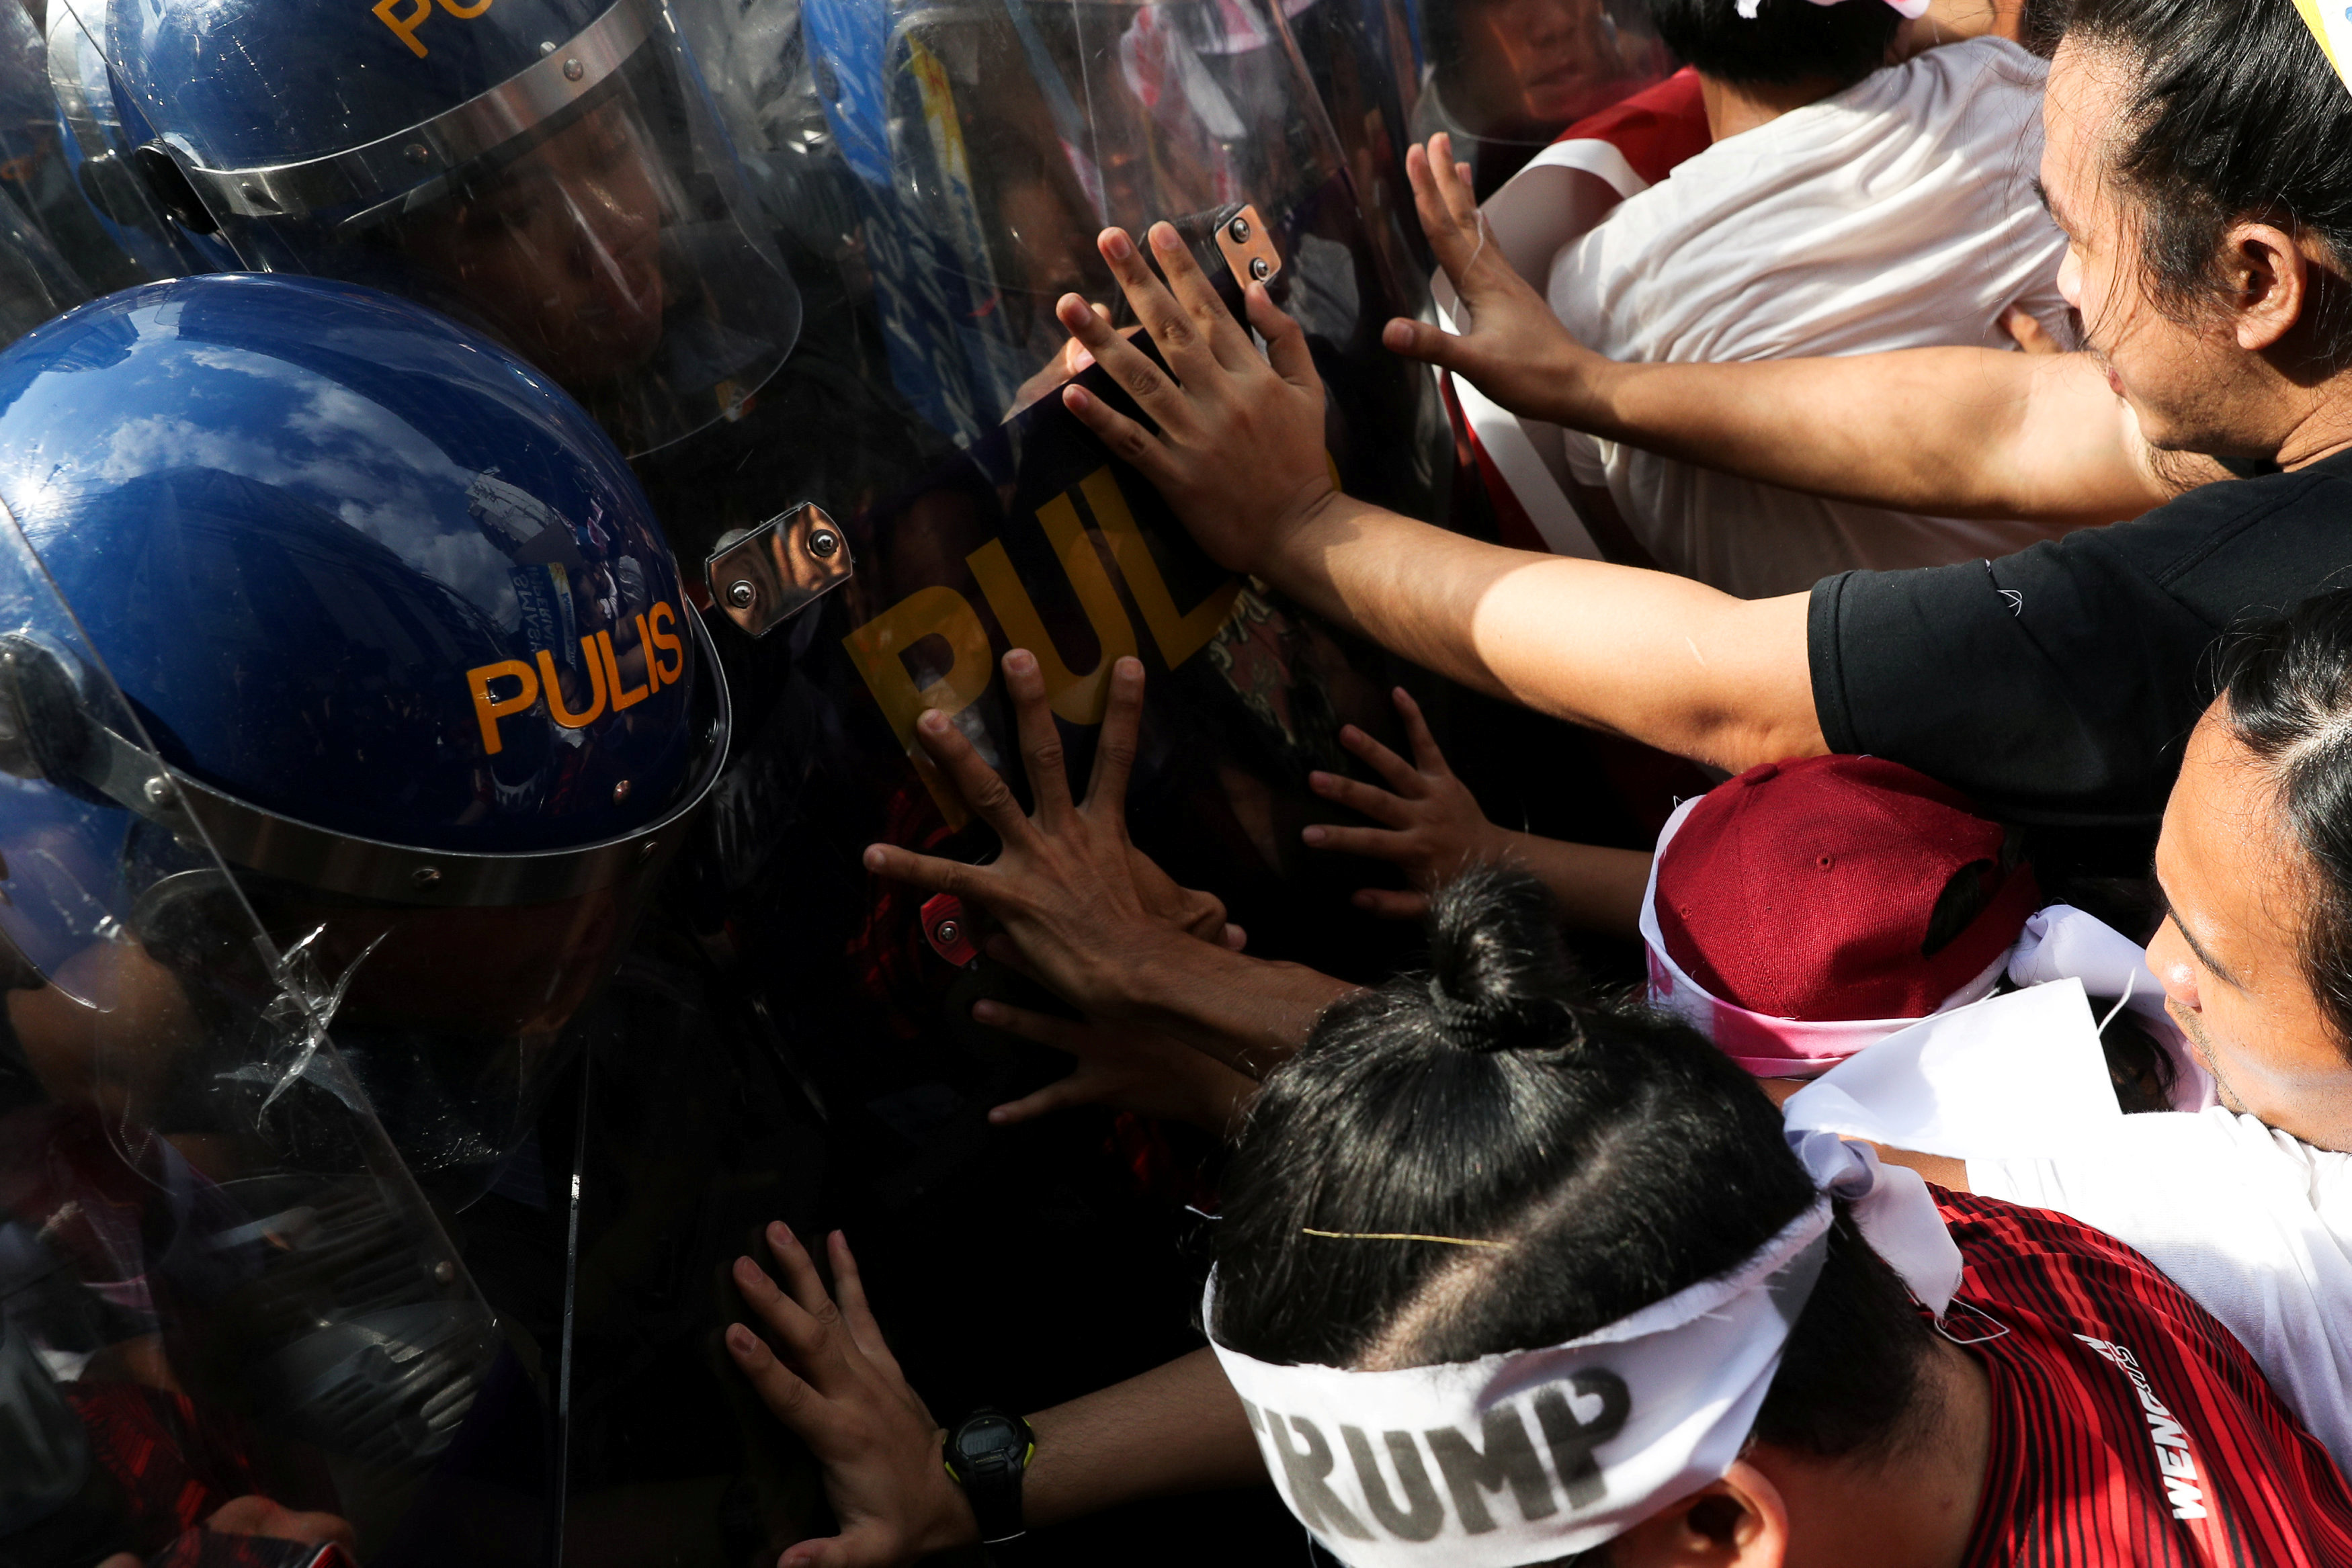 In pictures: Protest against Donald Trump in the Philippines